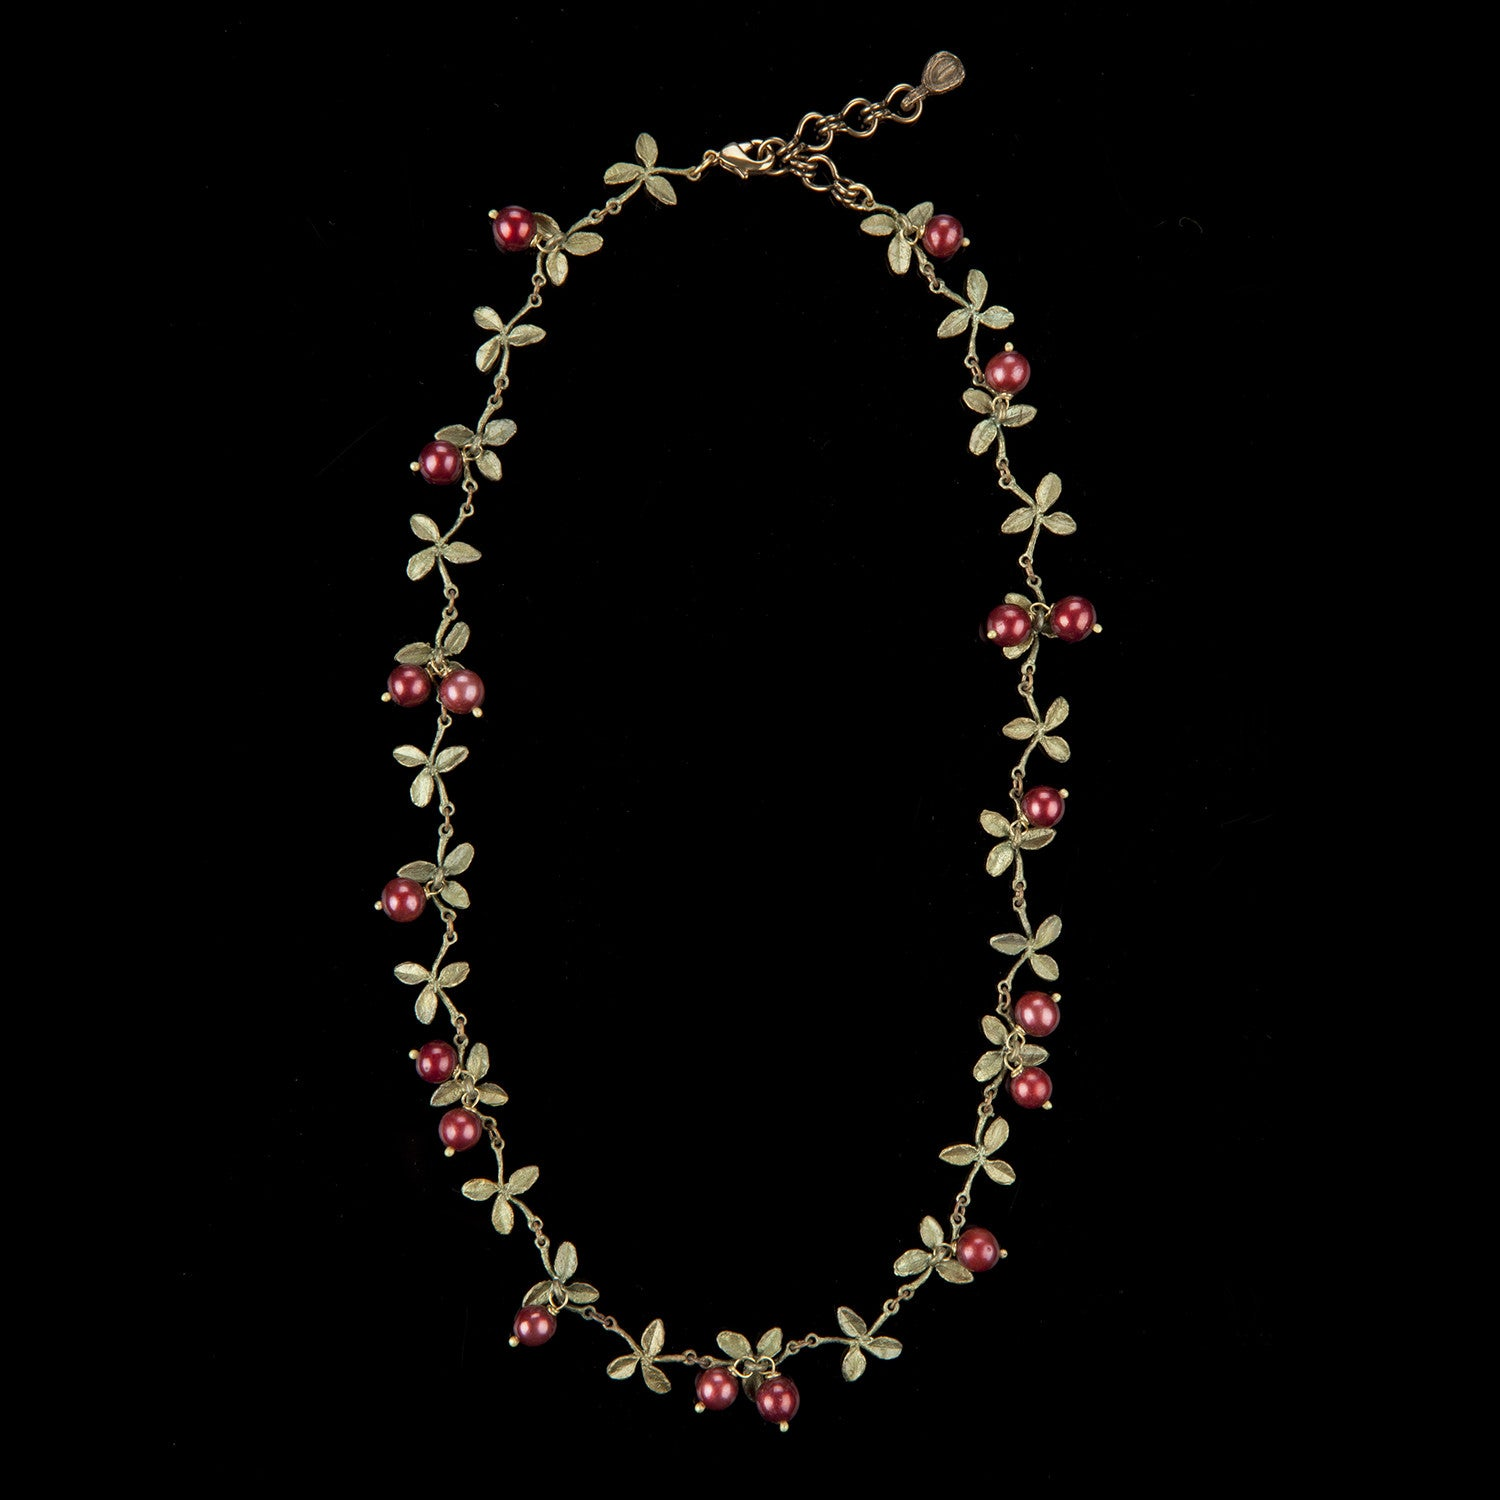 Cranberry - Collier Zart